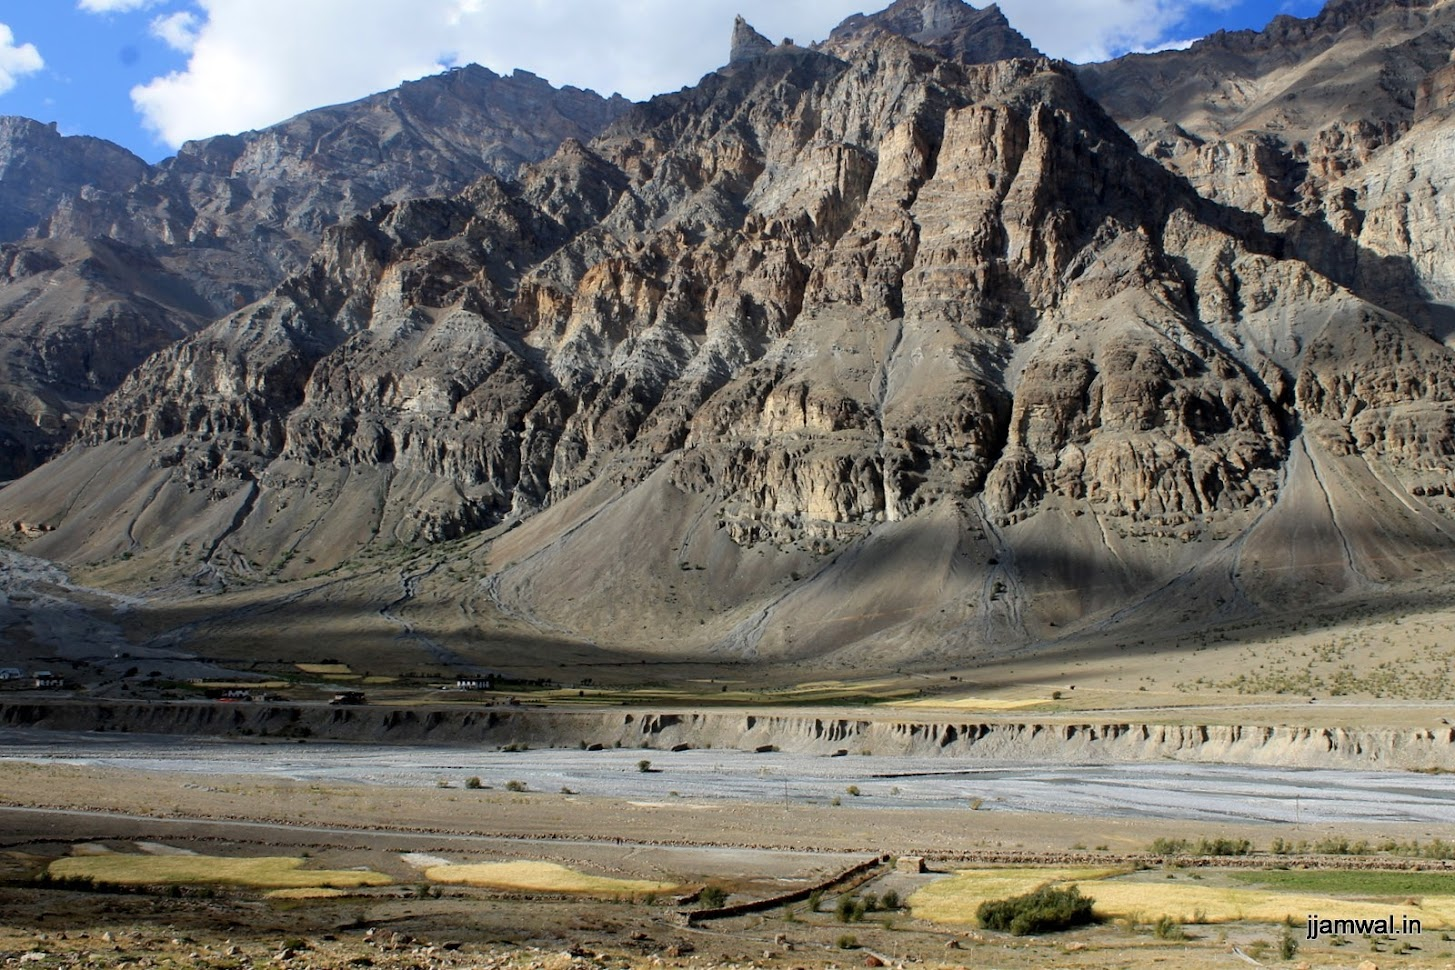 Farms, Spiti river and the majestic mountains in Losar village